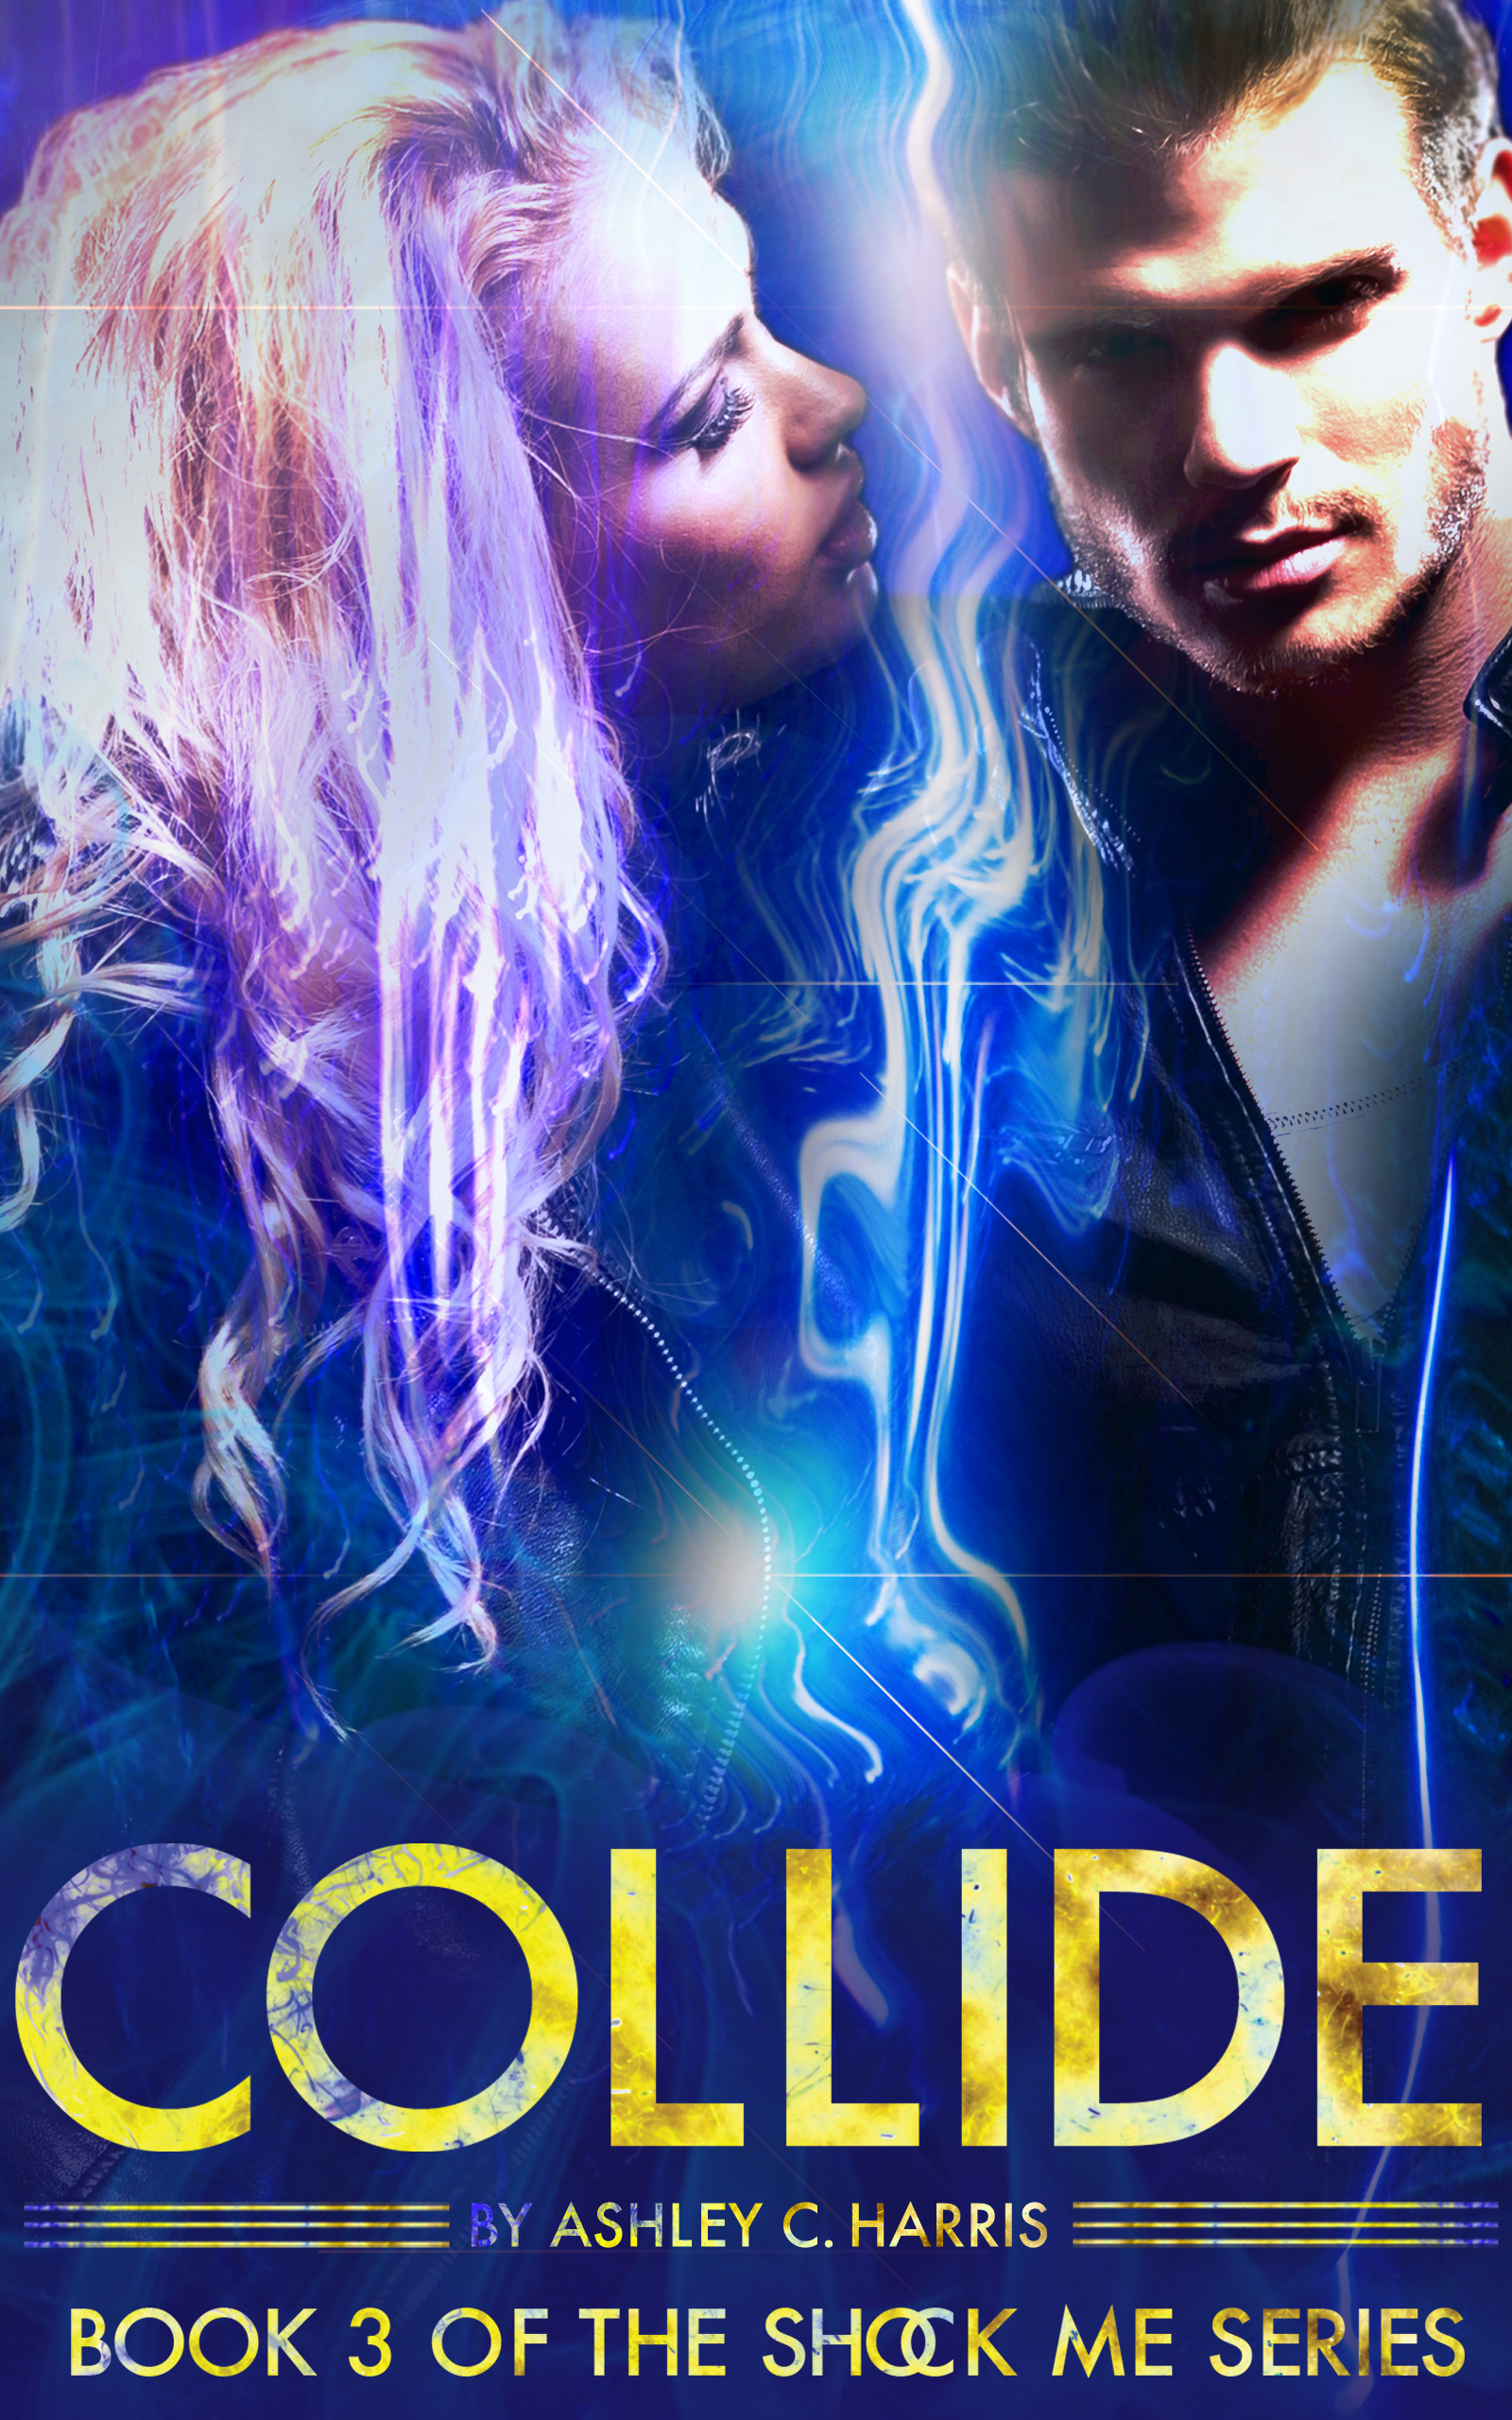 collide book cover.jpg